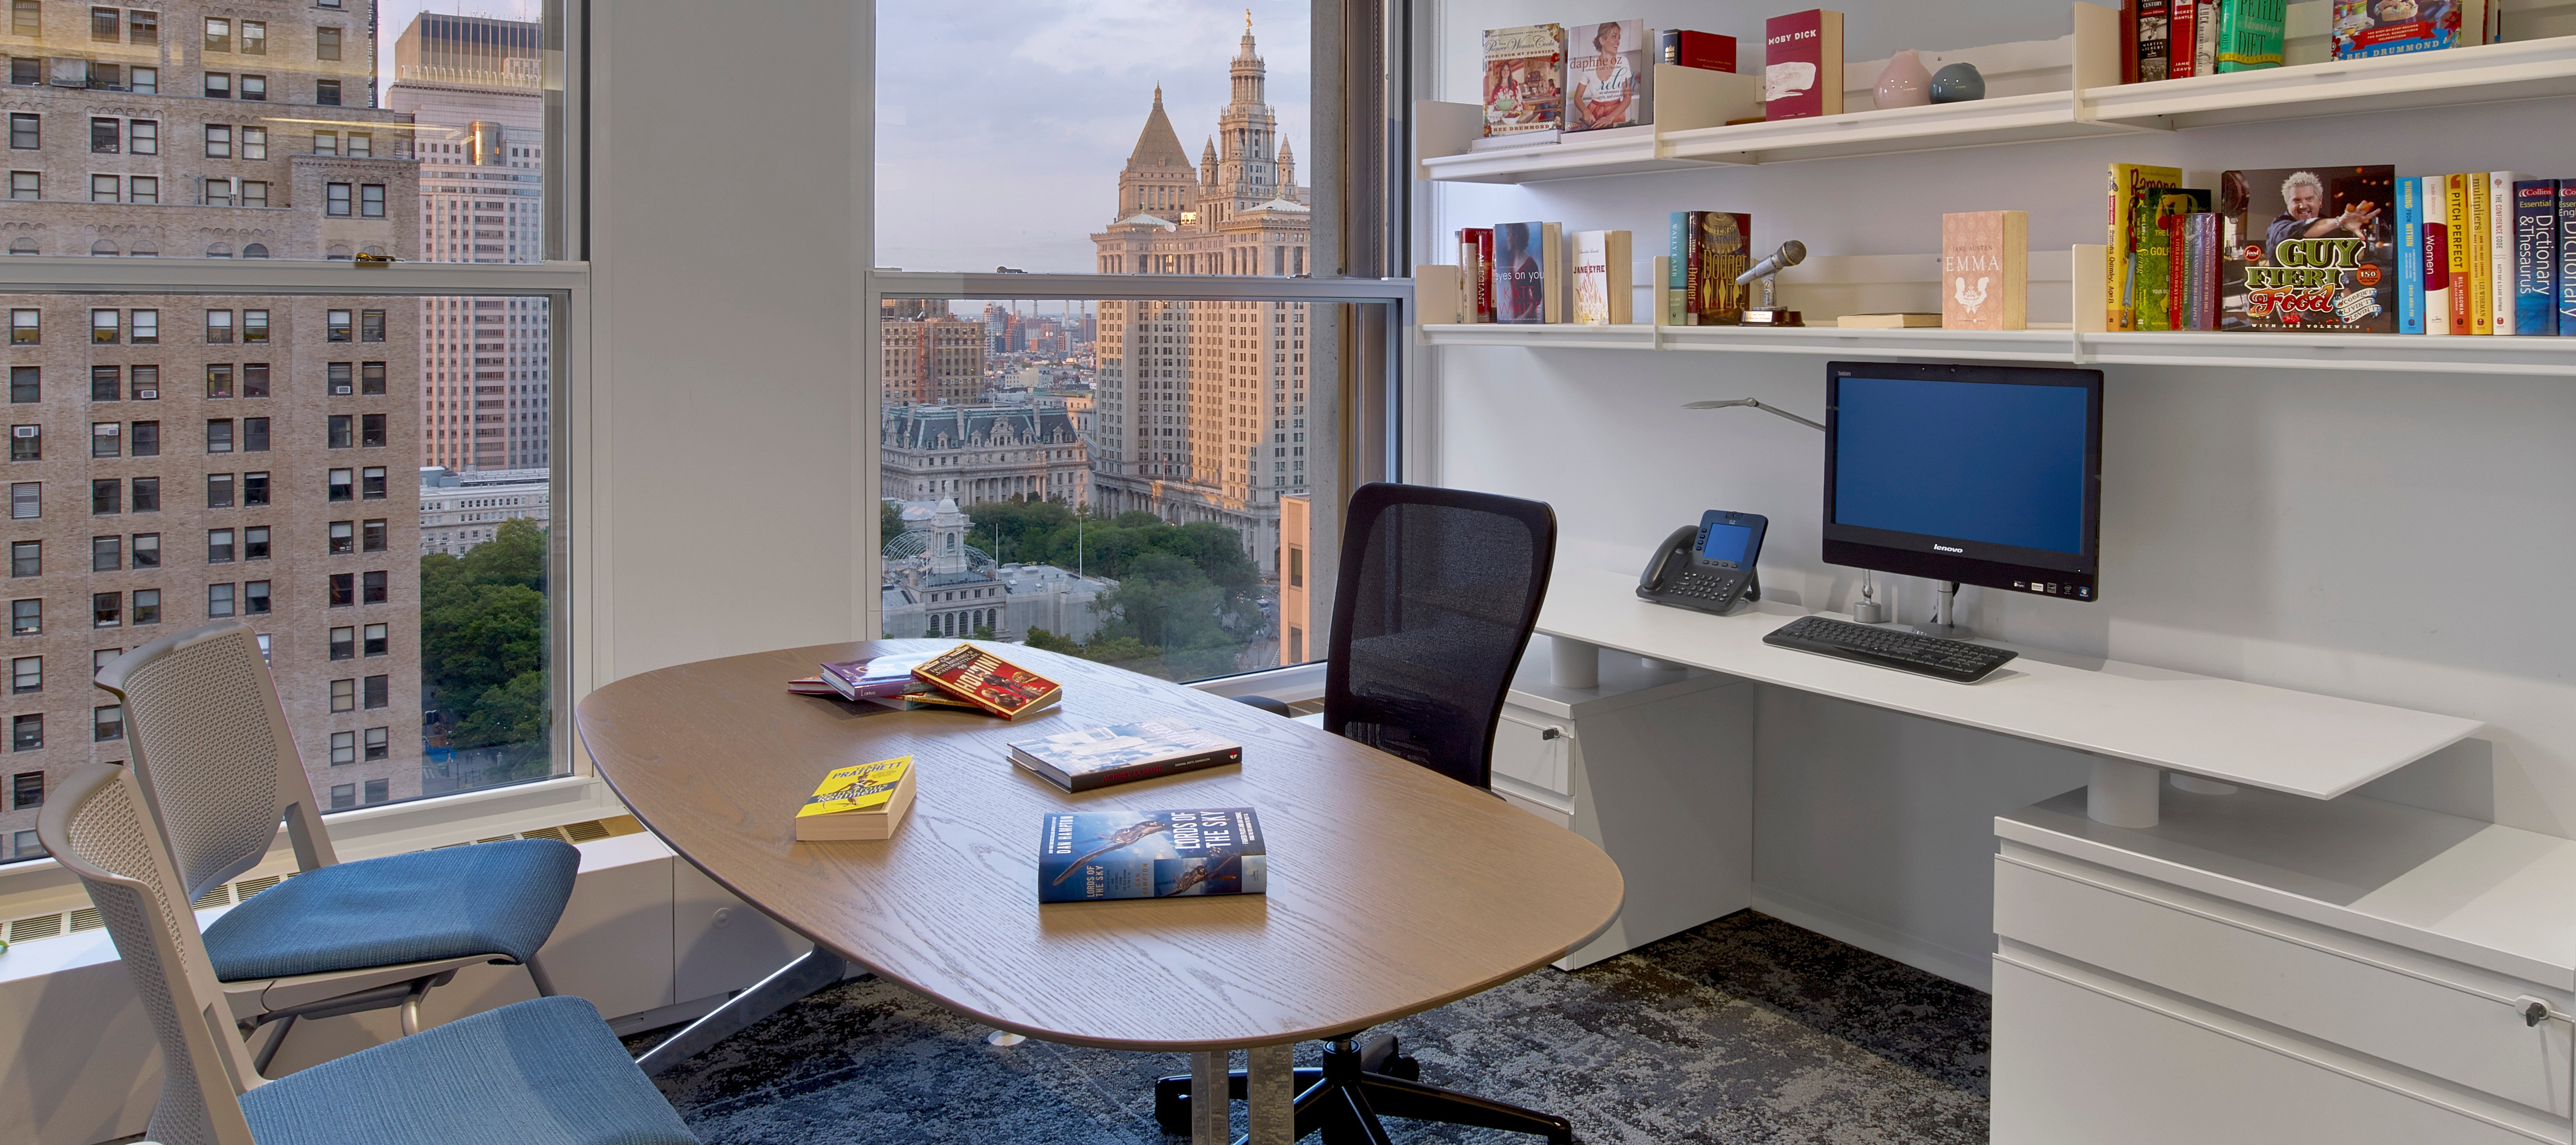 Taken at Haworth's Harper Collins client space.